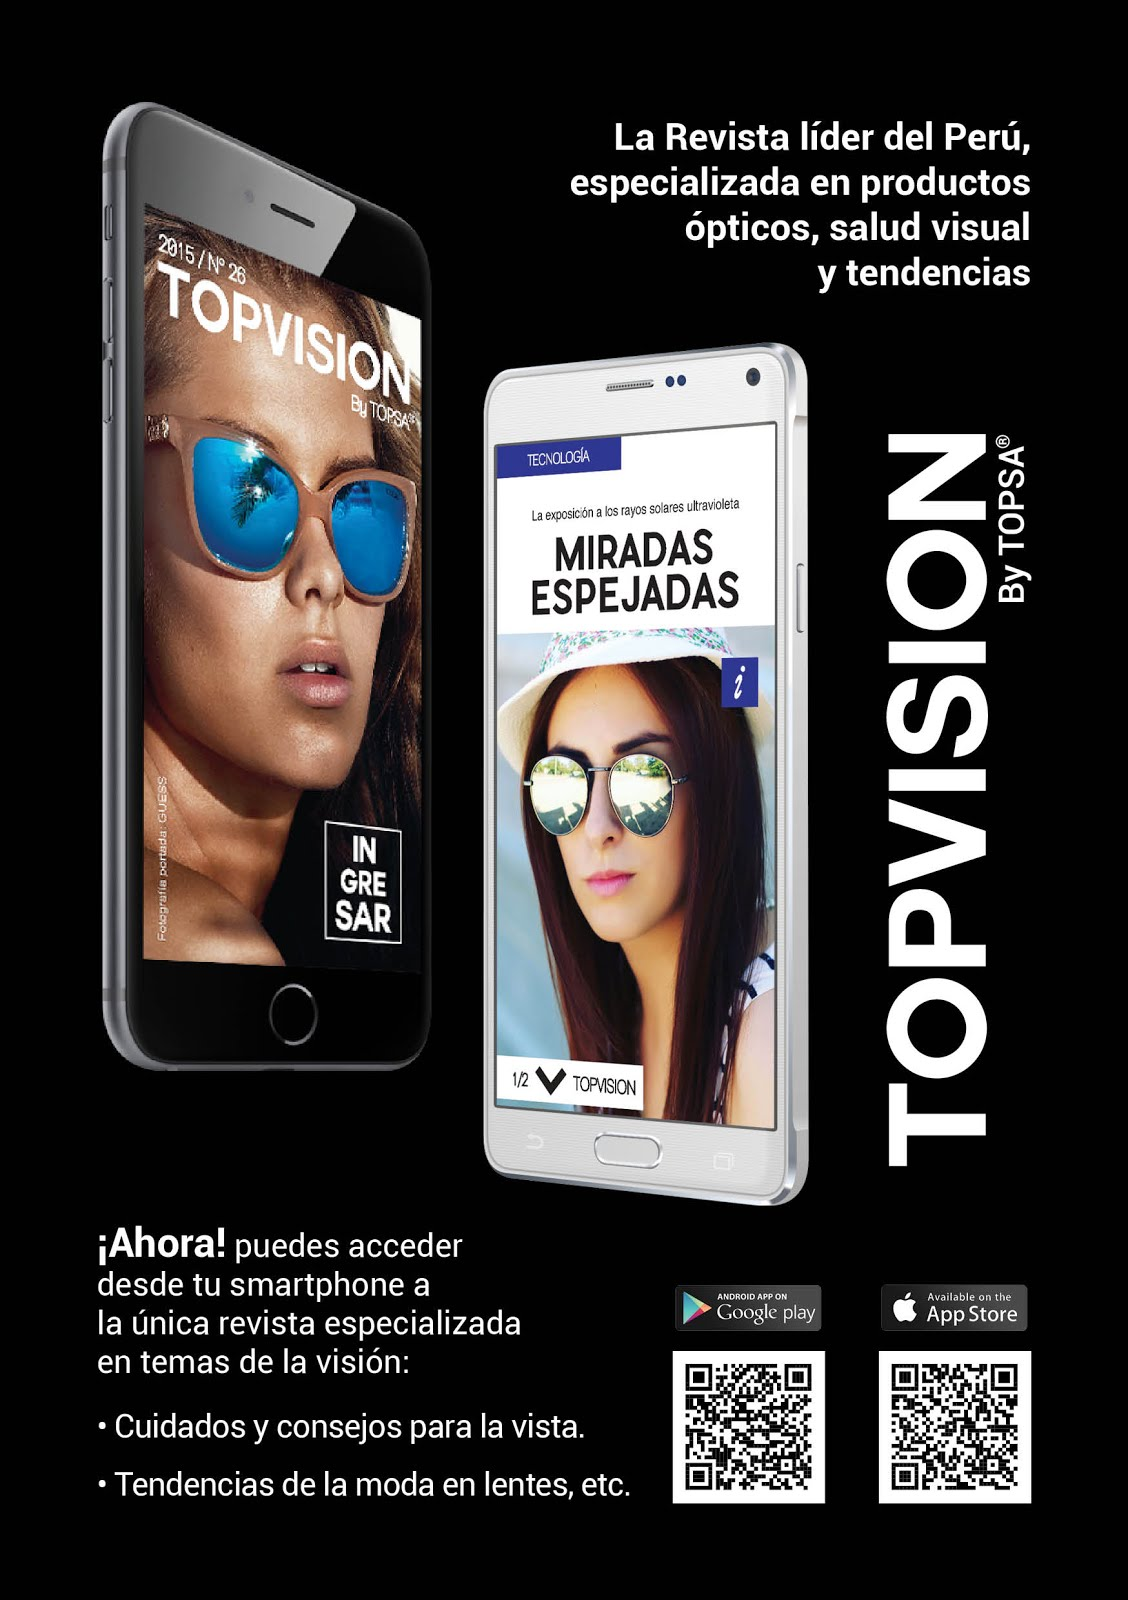 TOPVISION by Topsa